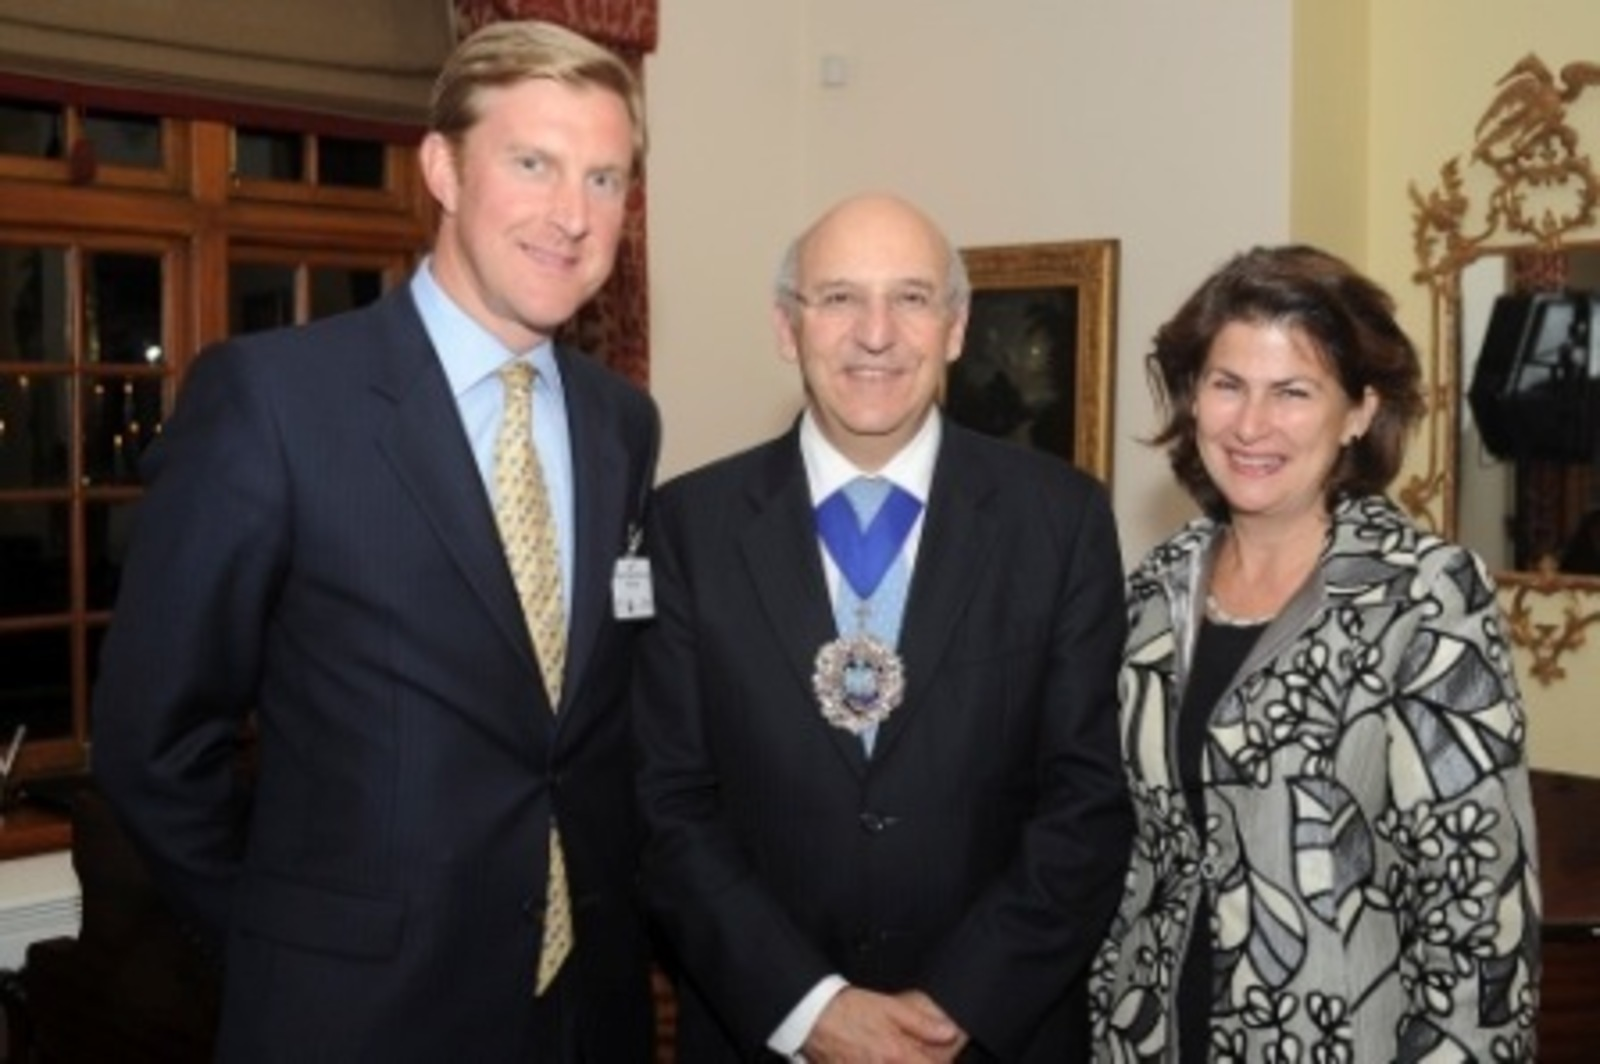 With the past Lord Mayor and Alderman, Sir Michael Bear and the High Commissioner at the reception sponsored by Rathbones at the High Commission in Cape Town